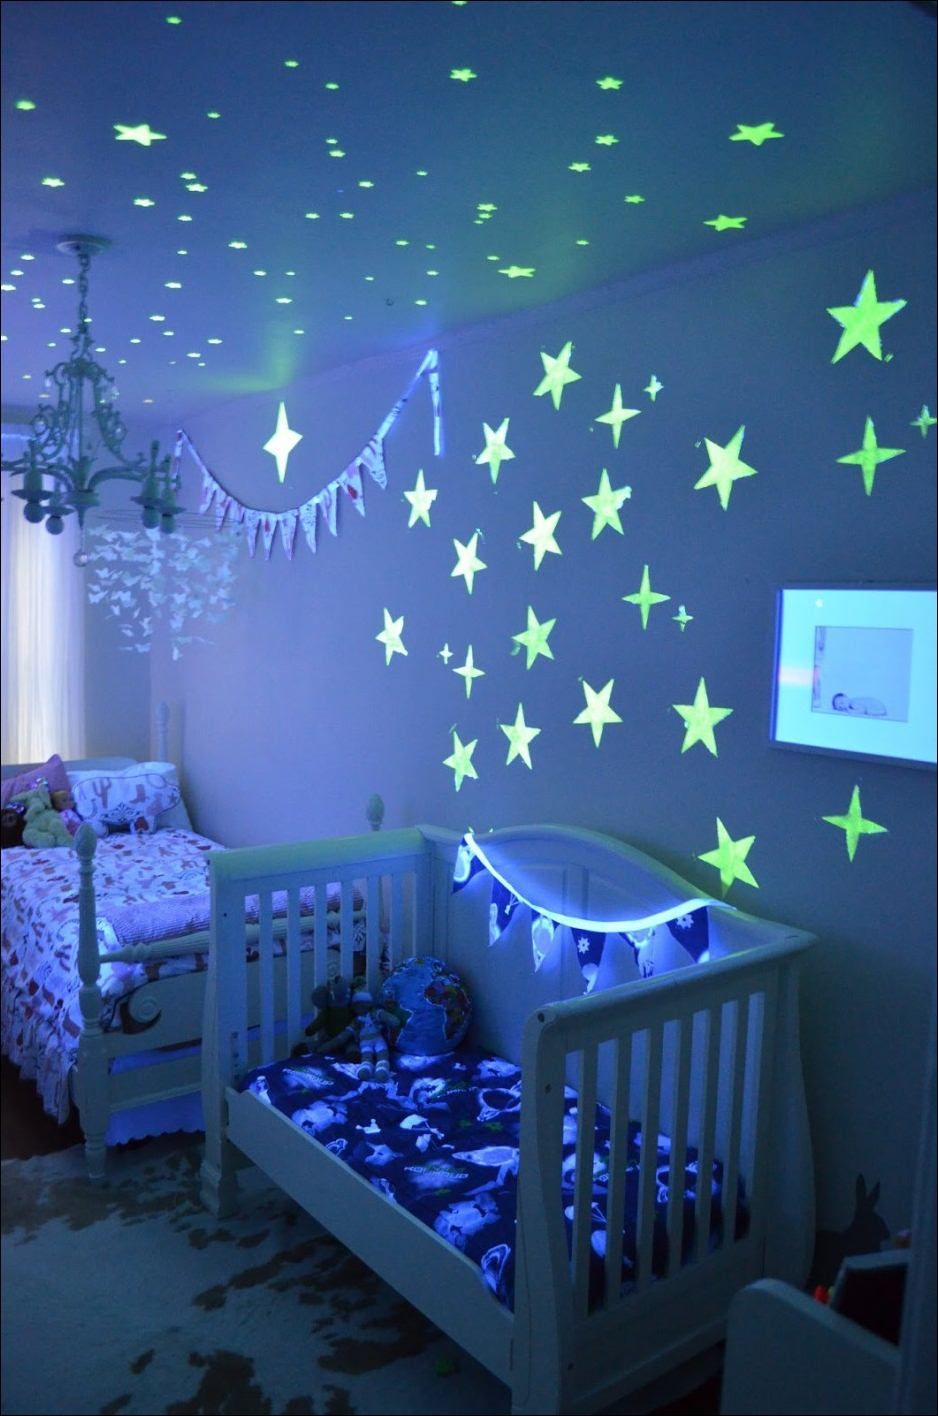 Kids Room Incredible Kids Room Decoration Apply Stary Ornaments That Glow In The Dark Looks So Amazing Decorati Simple Kids Bedrooms Kids Bedroom Disney Rooms